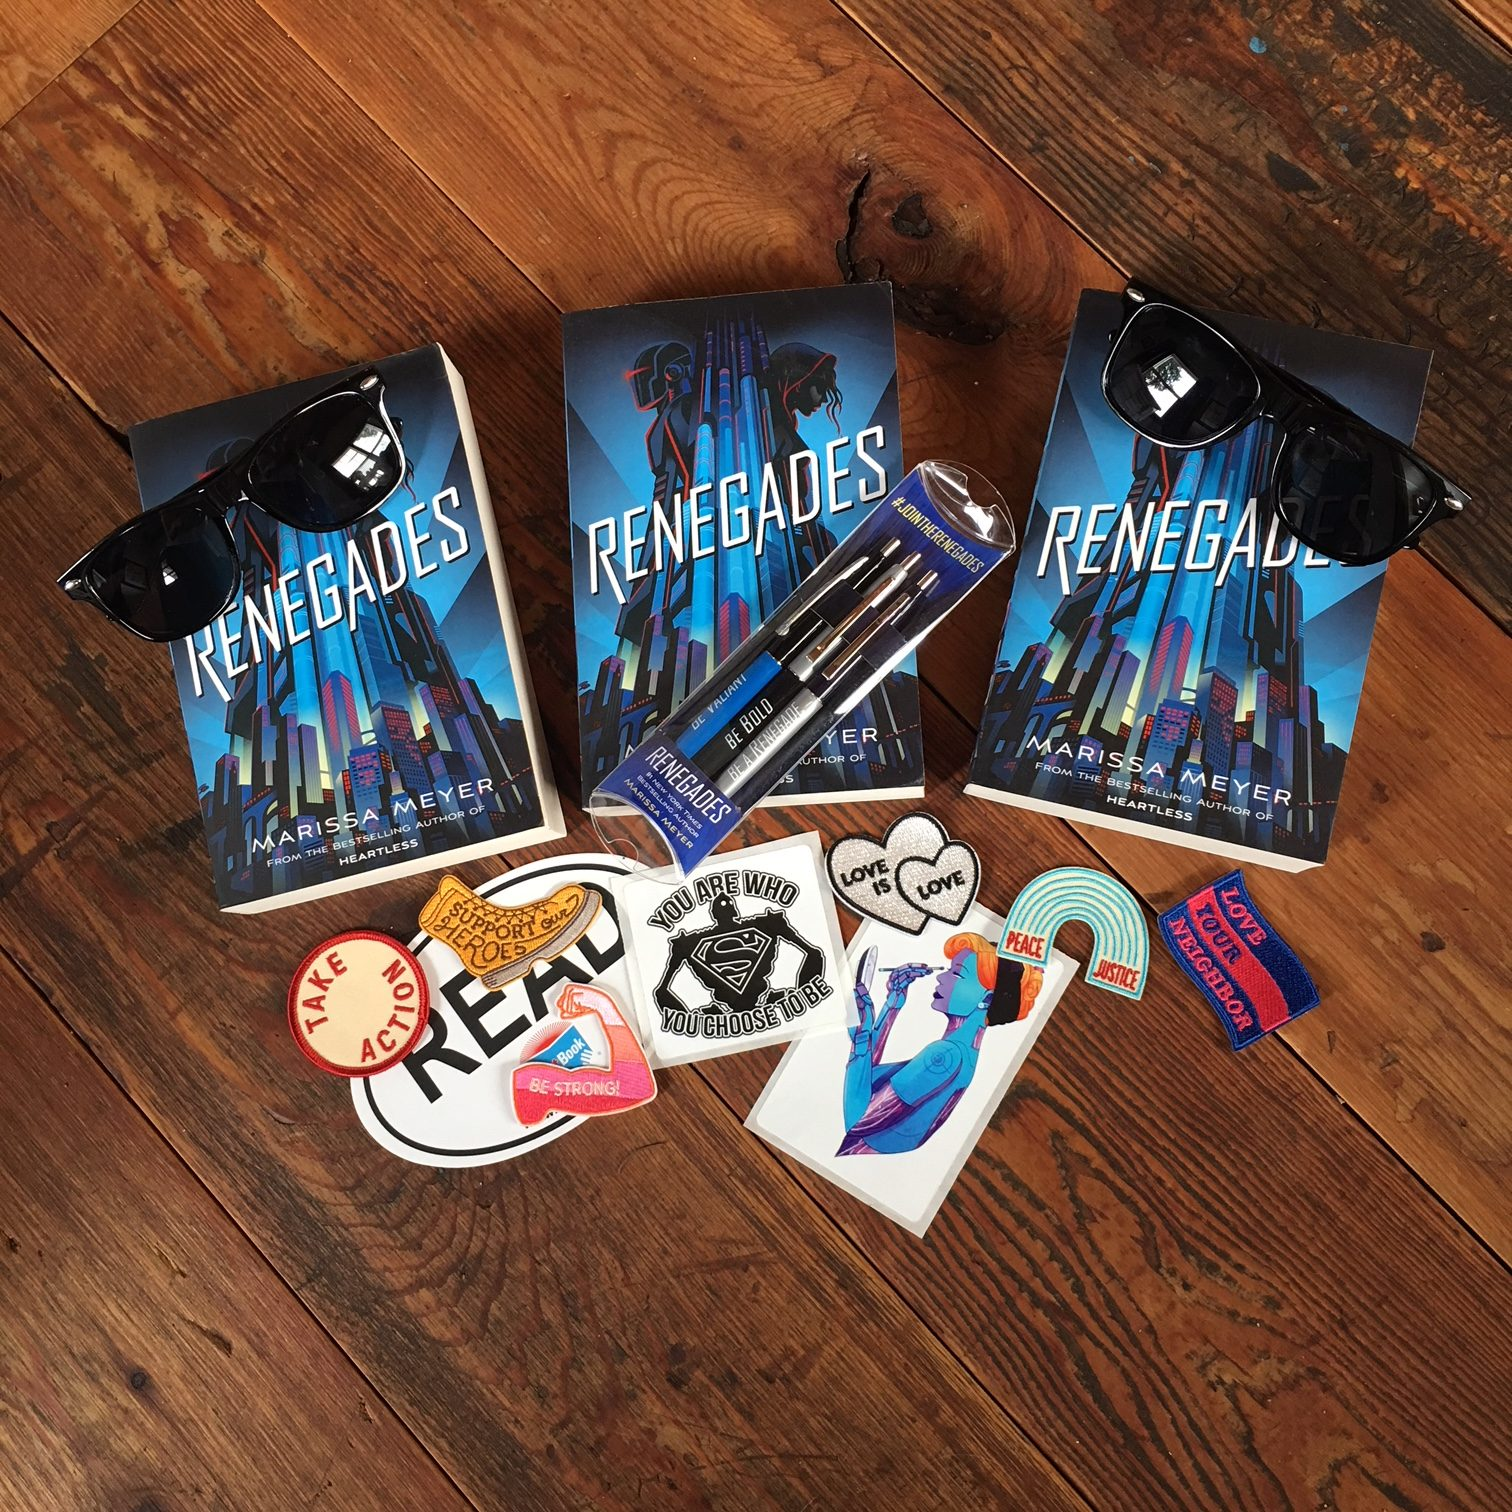 reveal my entries sweepstakes blog marissa meyer 9788